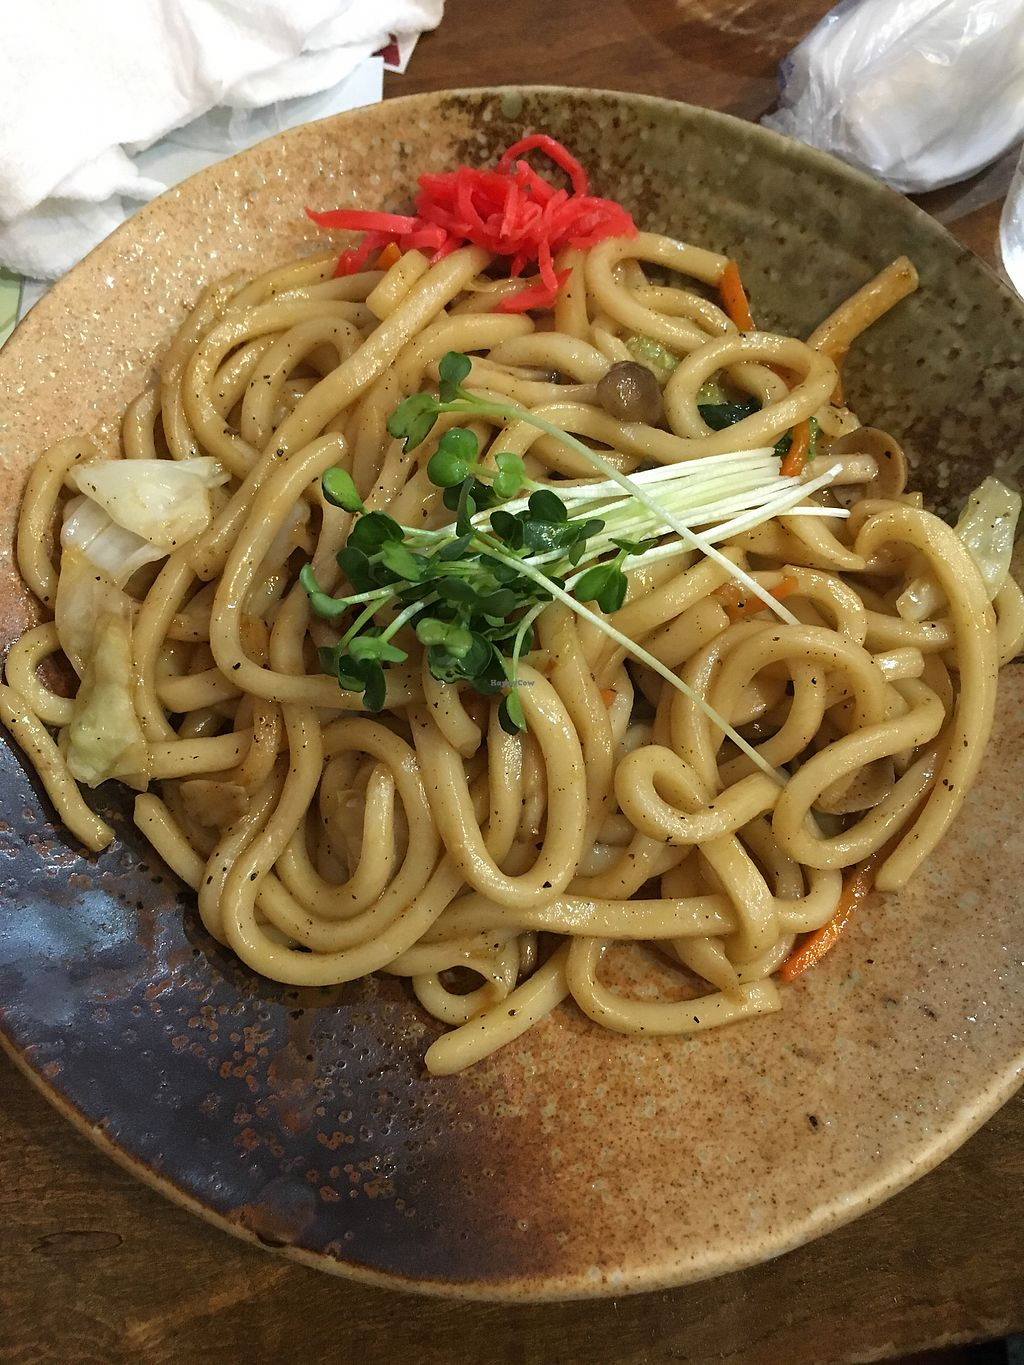 """Photo of Hippari Dako  by <a href=""""/members/profile/dartmouth2016"""">dartmouth2016</a> <br/>yaki udon noodles-- delicious! <br/> July 7, 2017  - <a href='/contact/abuse/image/24604/277402'>Report</a>"""